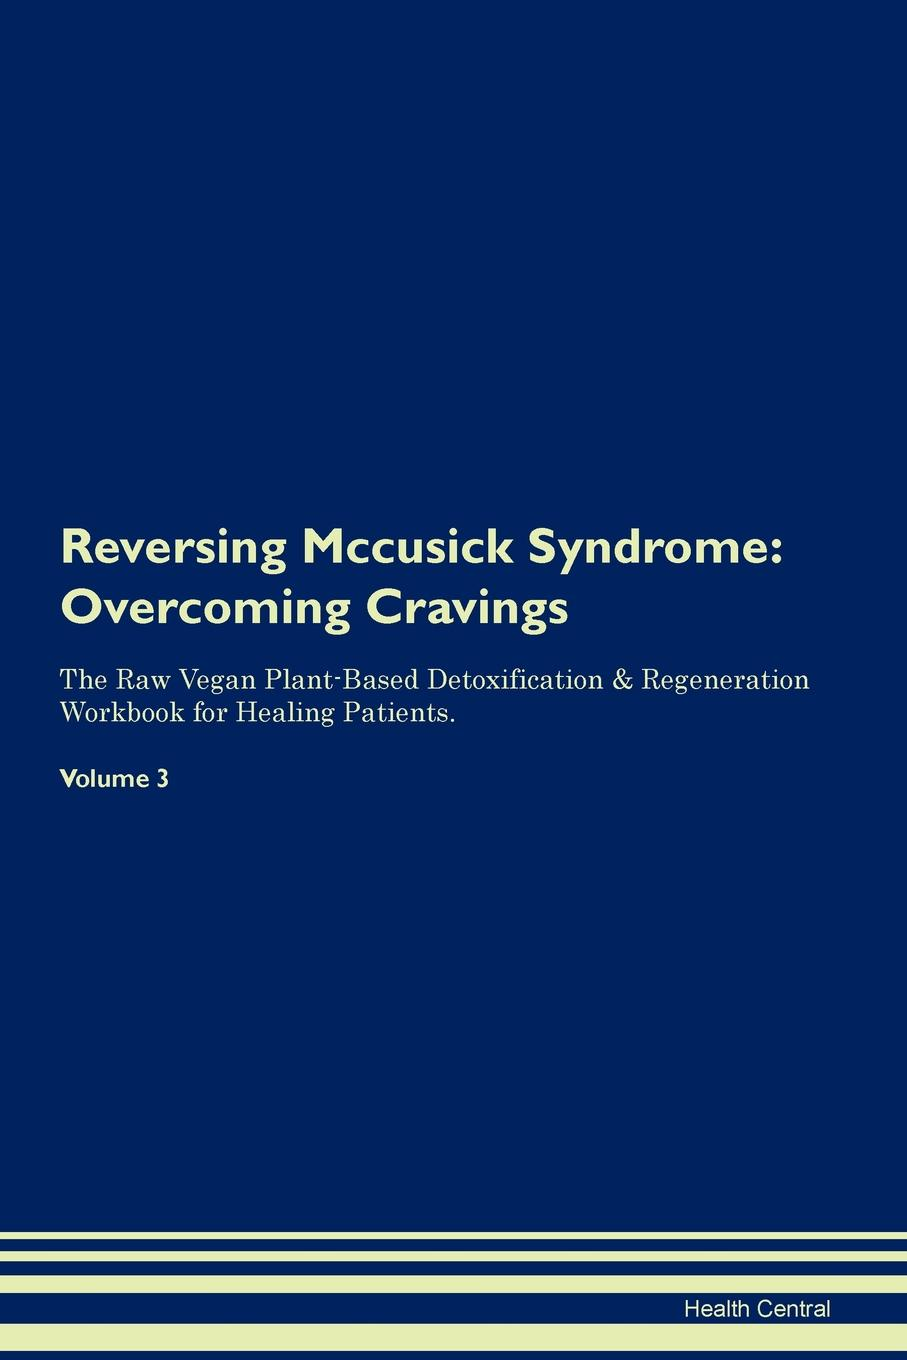 Health Central Reversing Mccusick Syndrome. Overcoming Cravings The Raw Vegan Plant-Based Detoxification . Regeneration Workbook for Healing Patients. Volume 3 prevalance of metabolic syndrome in baghdad